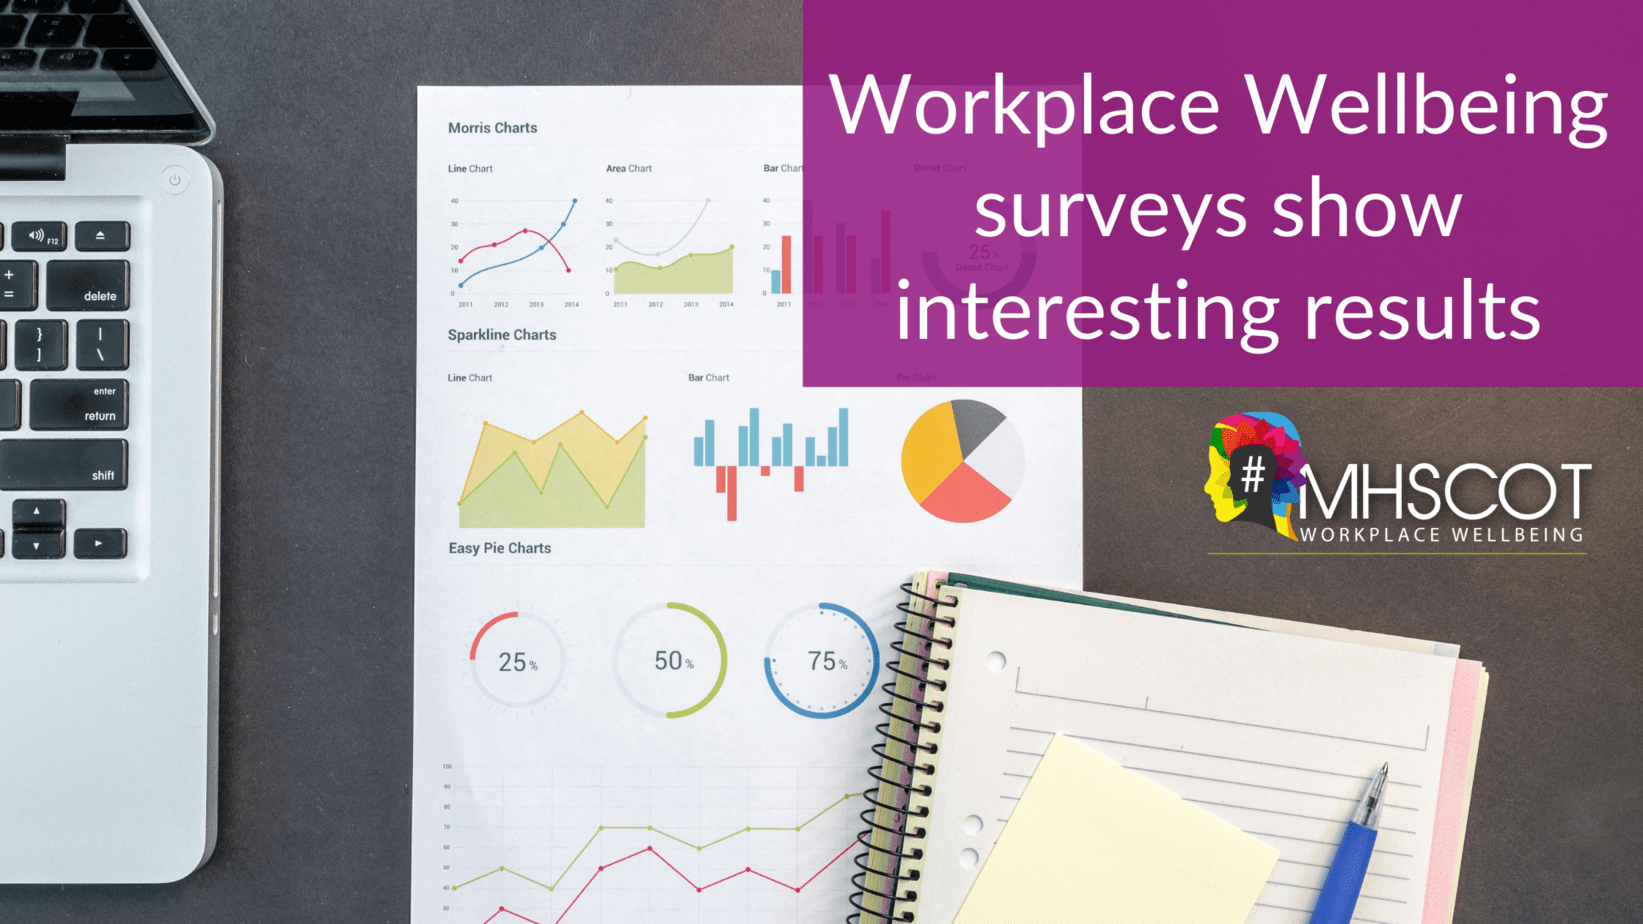 workplace wellbeing survey show interesting results